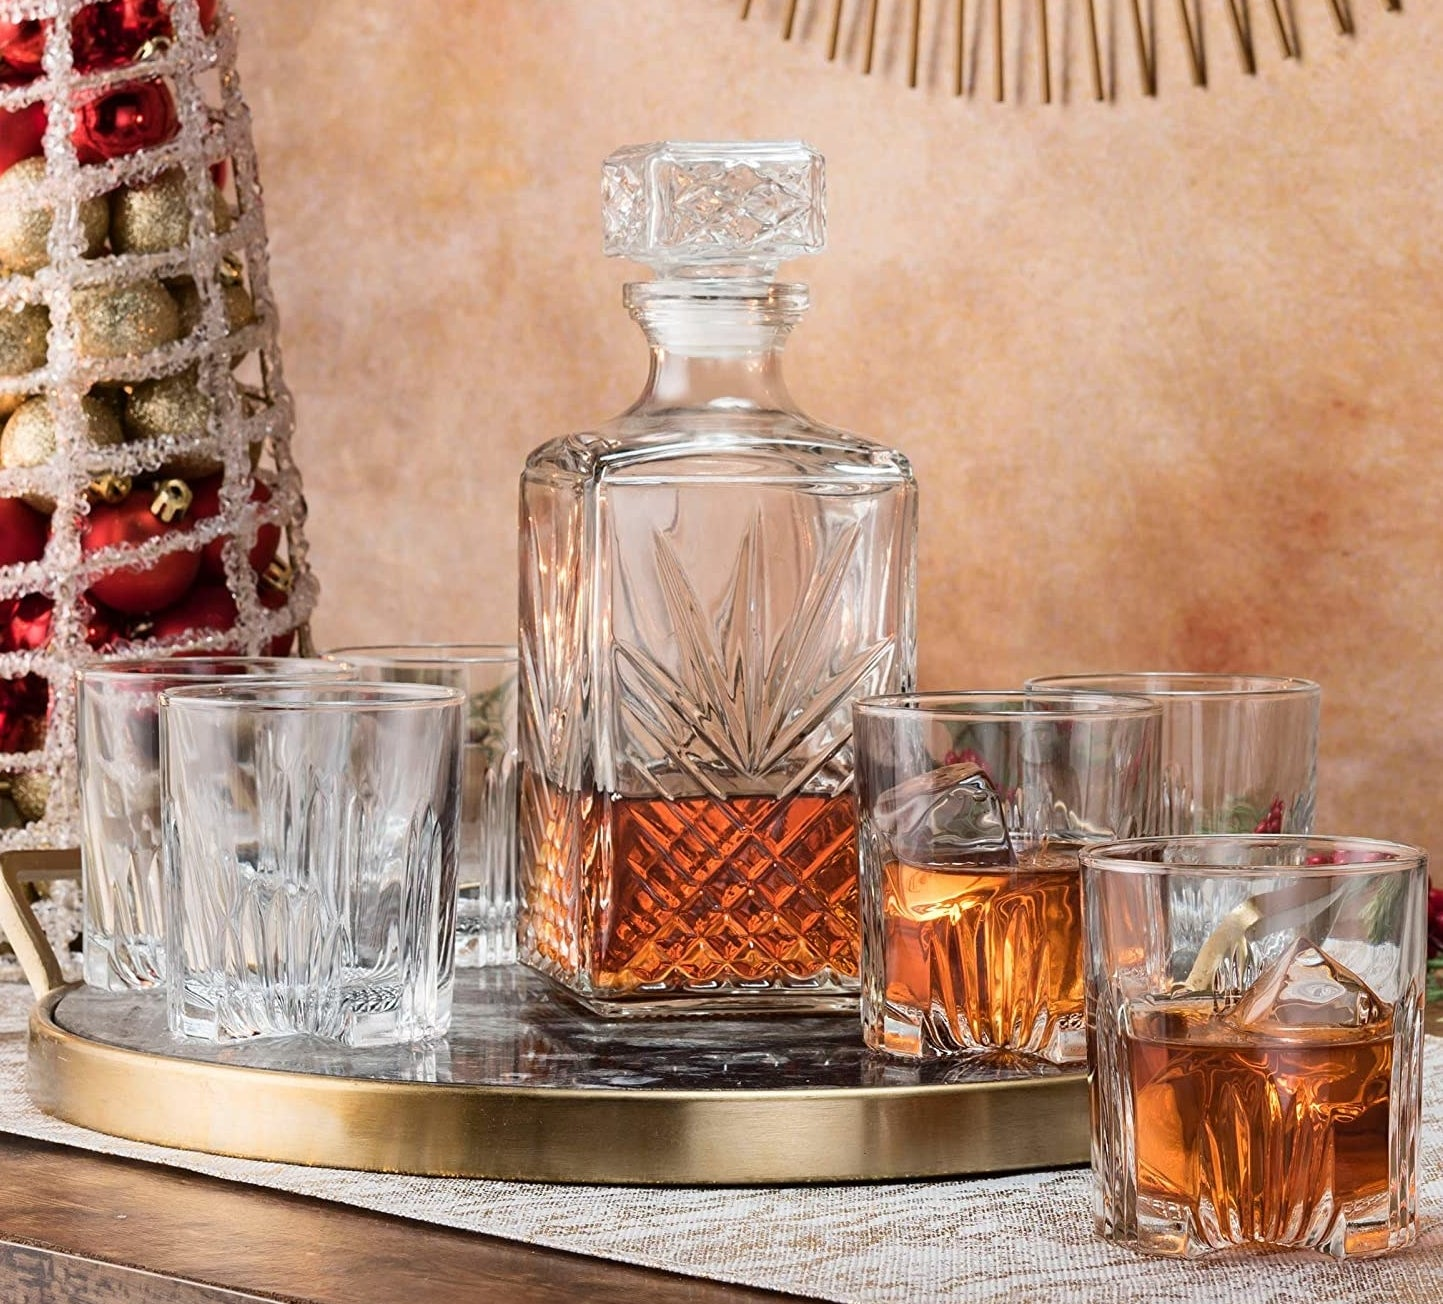 Six glasses beside a whisky decanter on a metallic tray